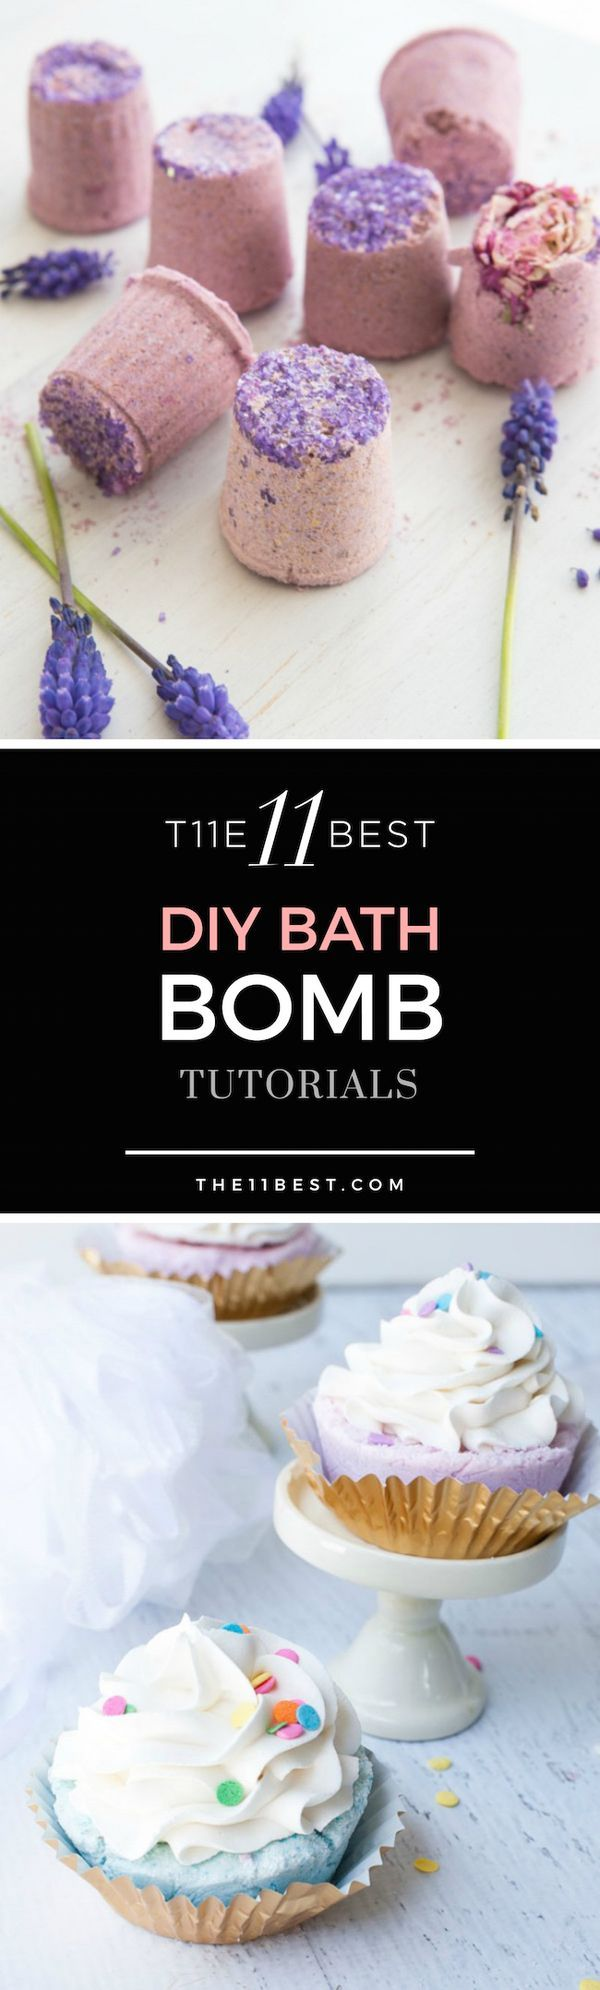 420 best bath and body diy images on pinterest beauty tutorials the 11 best diy bath bomb ideas and tutorials instructions for how to make bath solutioingenieria Gallery